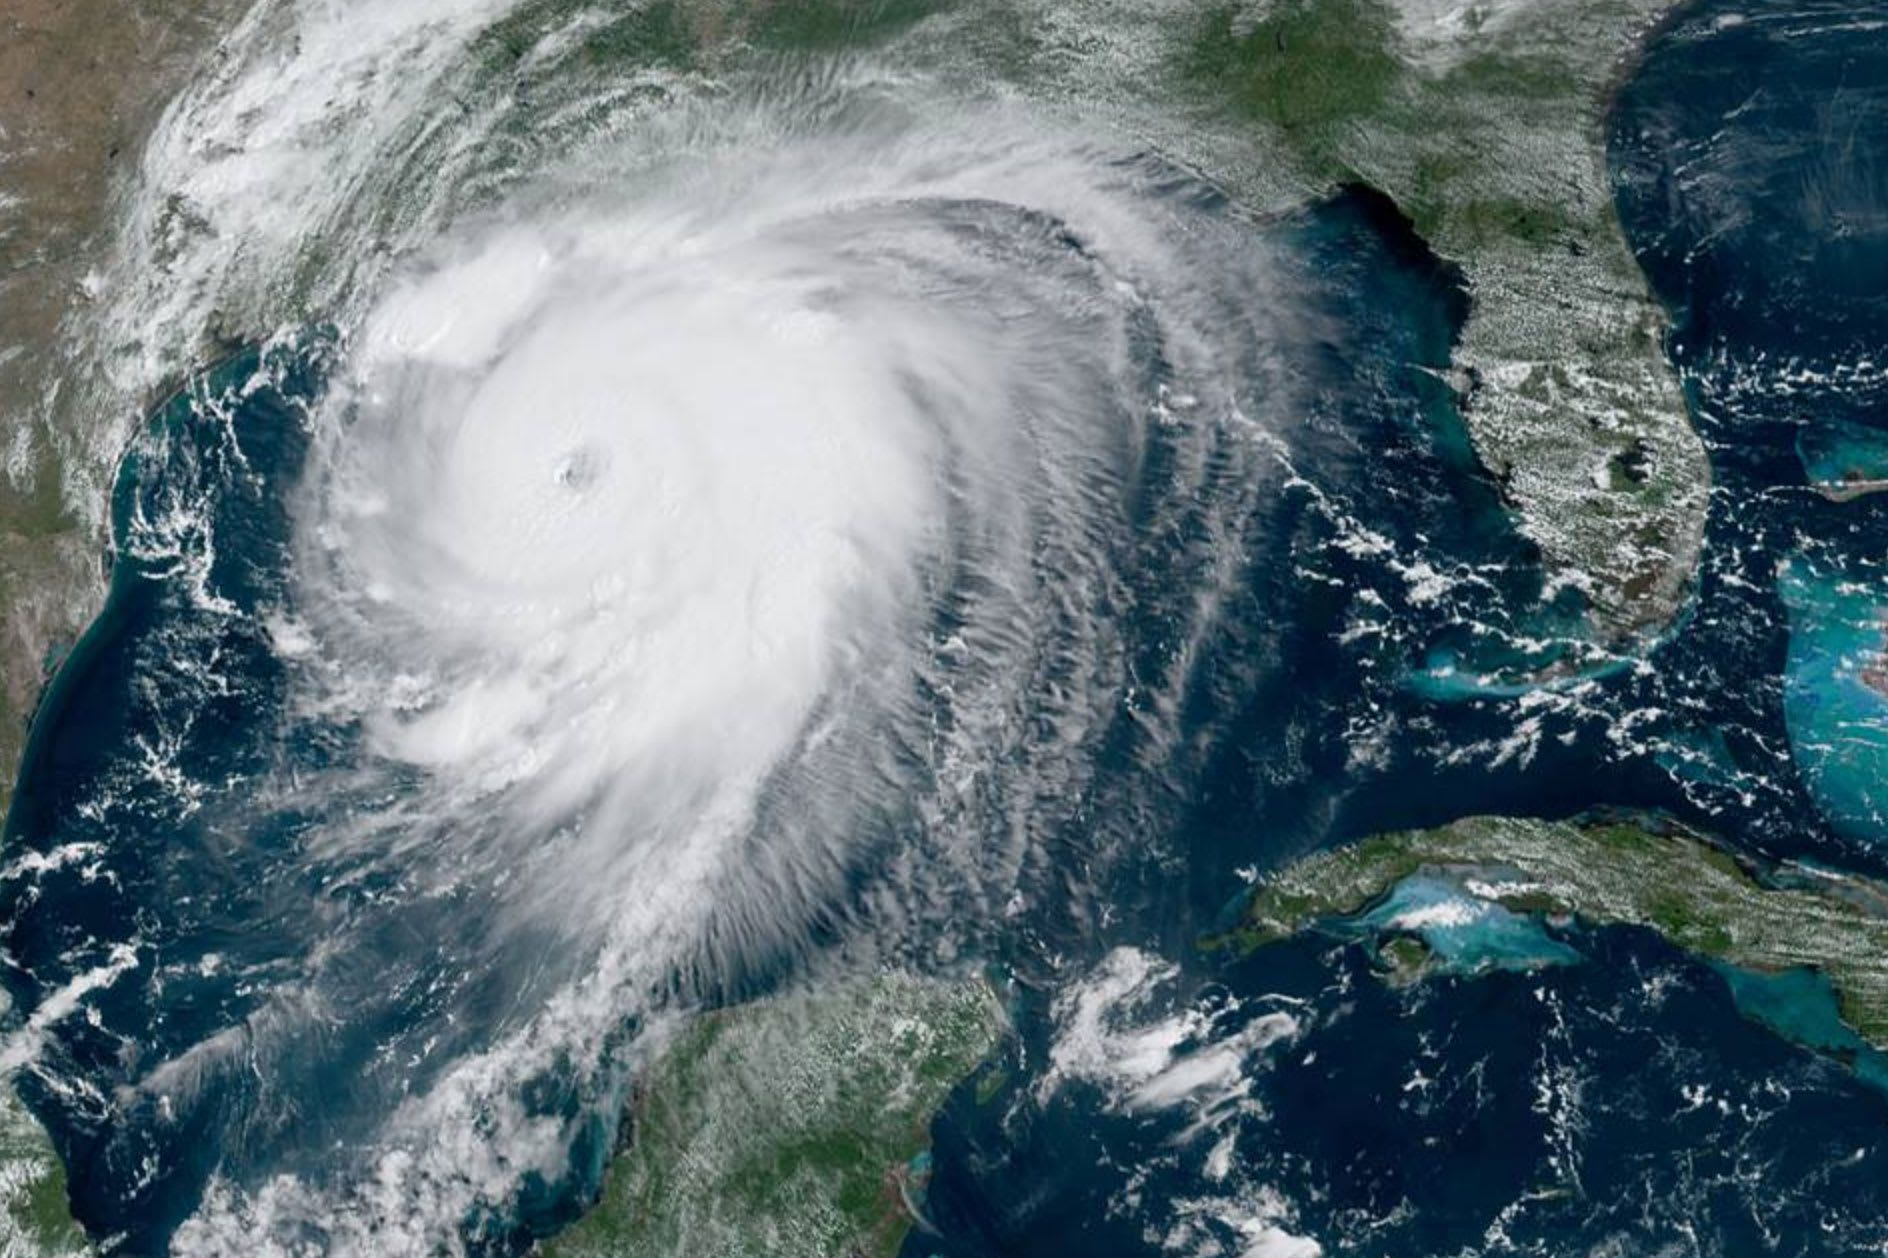 Laura Upgraded To Category 4 Hurricane Unsurvivable Storm Surge Forecast For Texas Louisiana In 2020 Storm Surge Hurricane National Hurricane Center